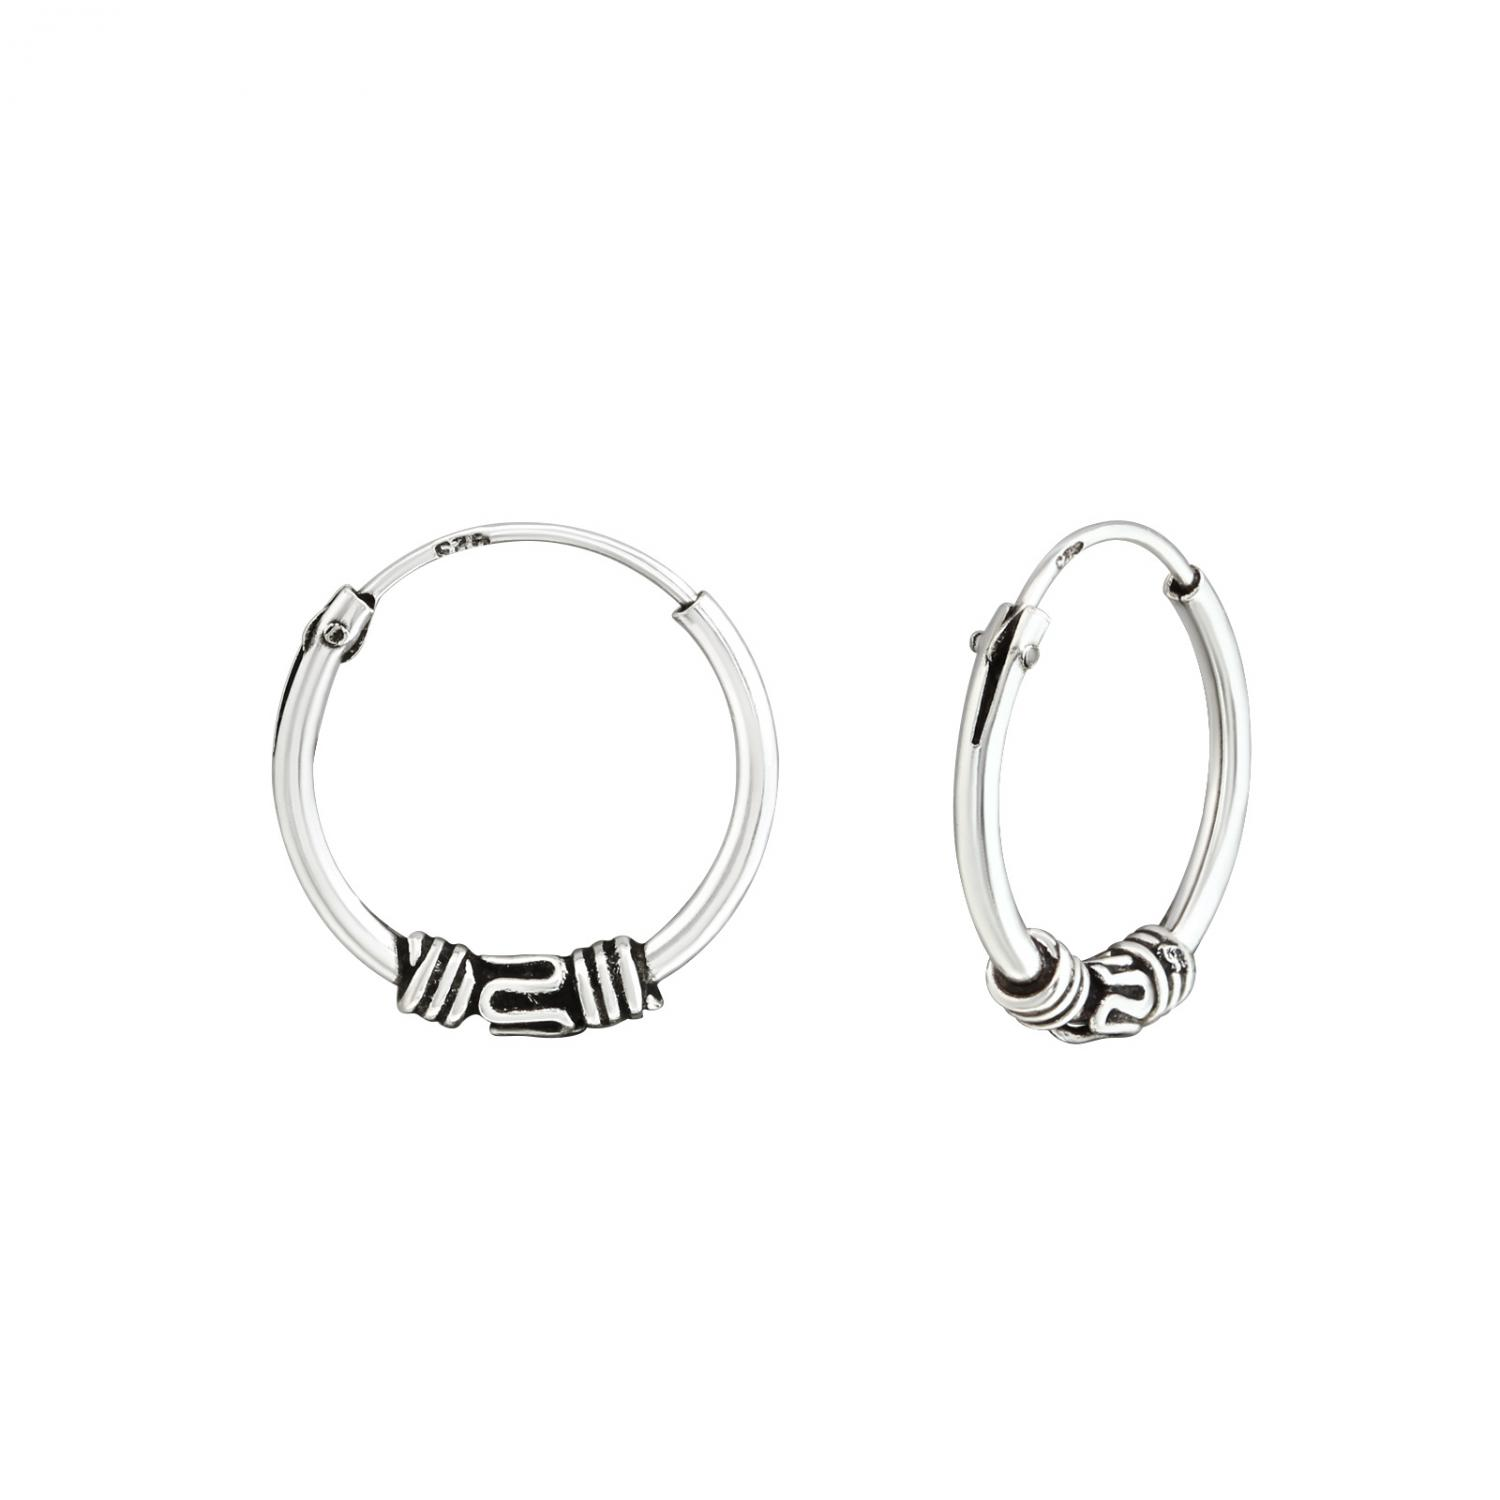 Bali Hoops i 925 Sterling Silver - 12 mm